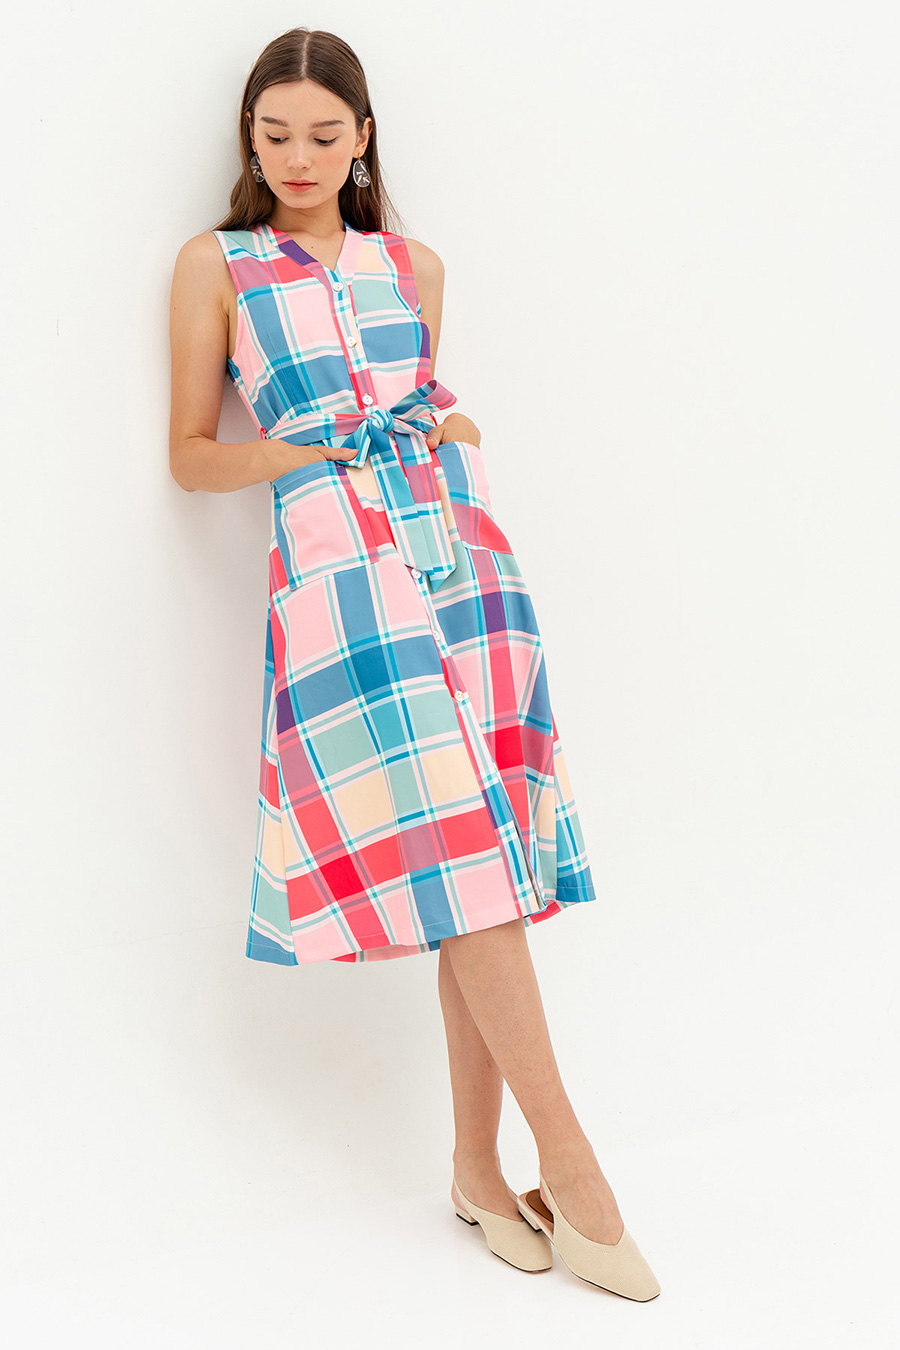 *BO* DAUPINE DRESS - OMBRE PLAID [BY MODPARADE]